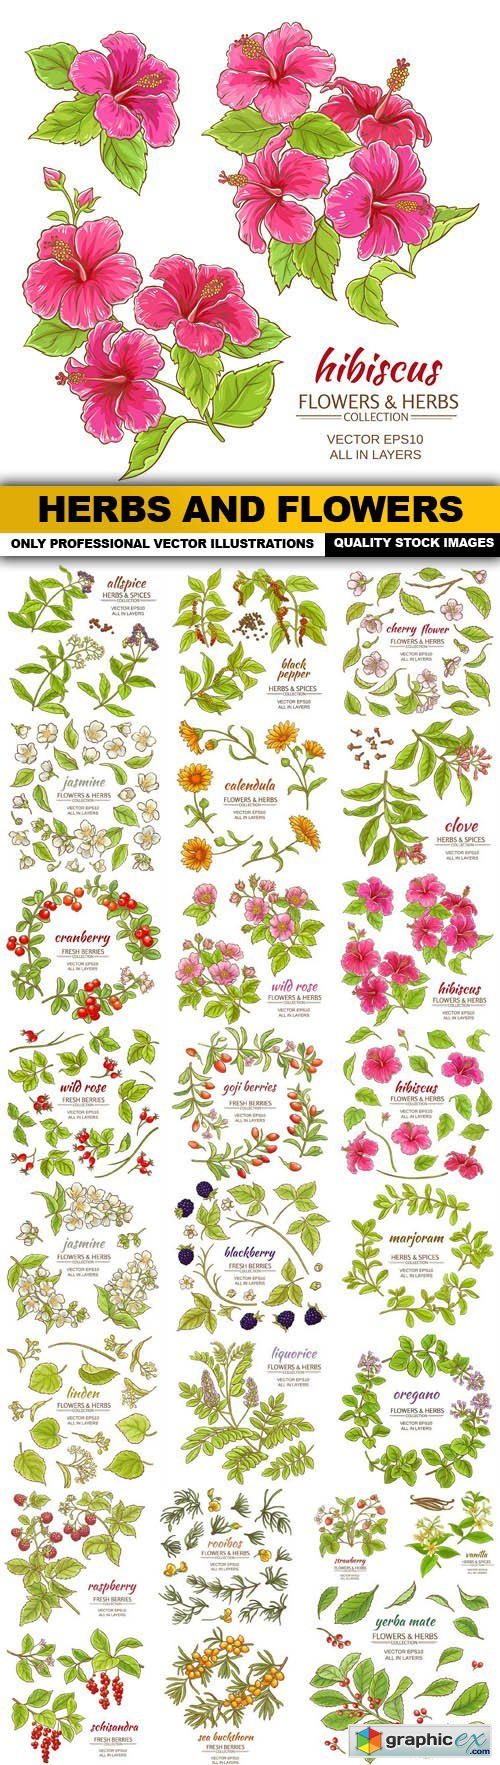 Herbs And Flowers - 25 Vector